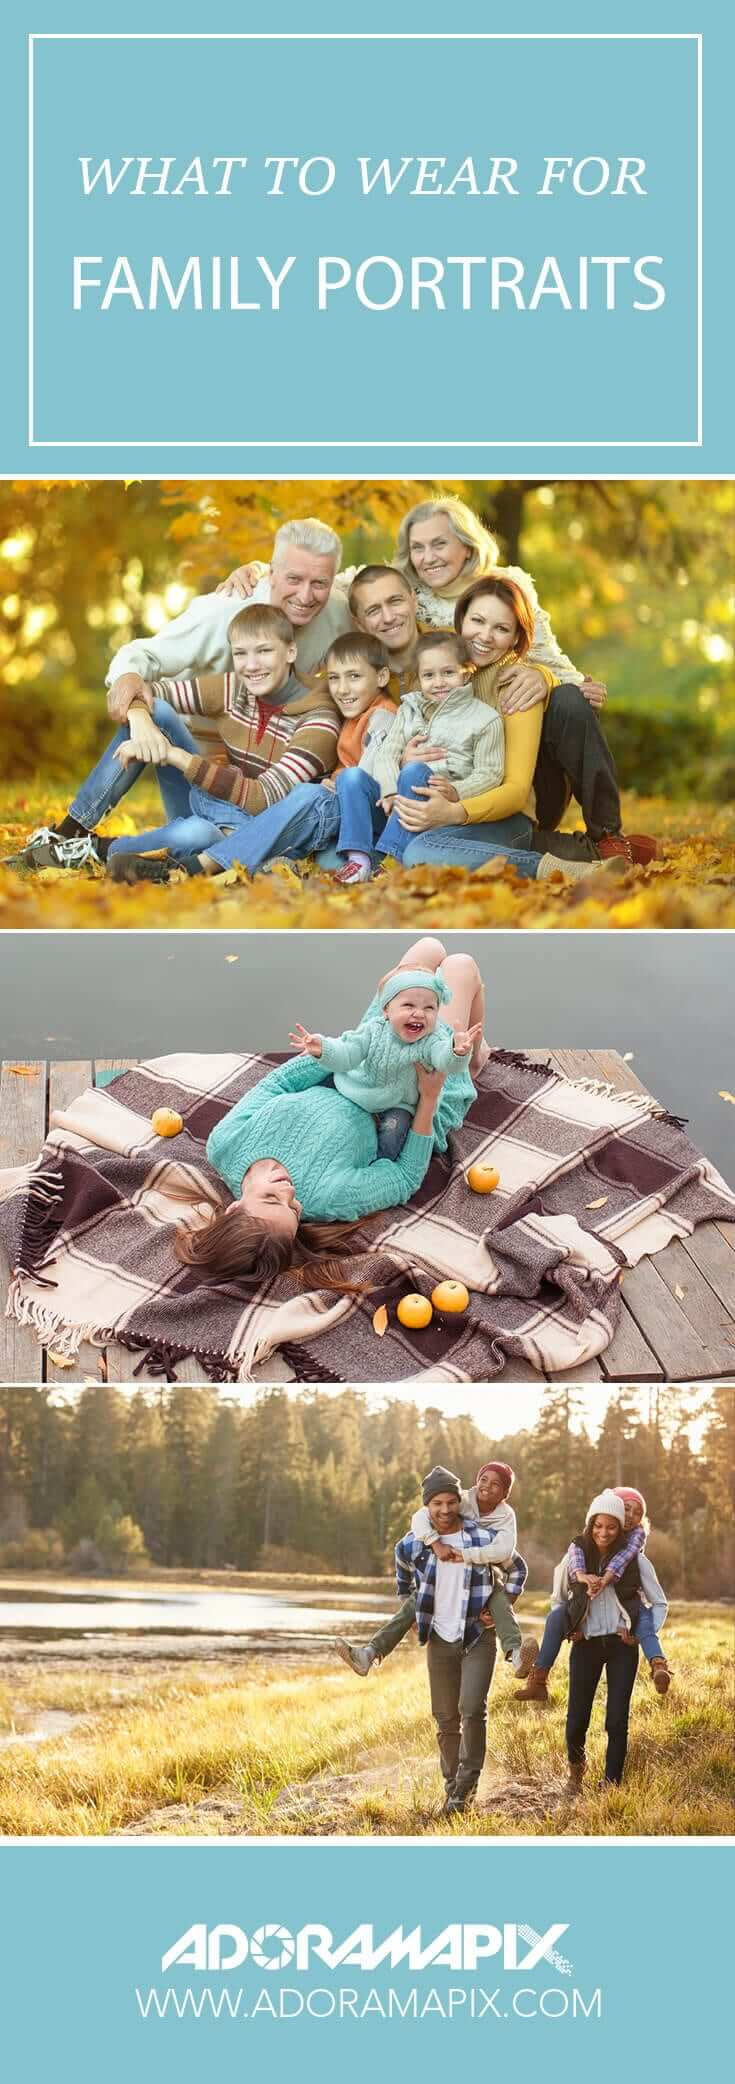 what to wear for family portraits adoramapix